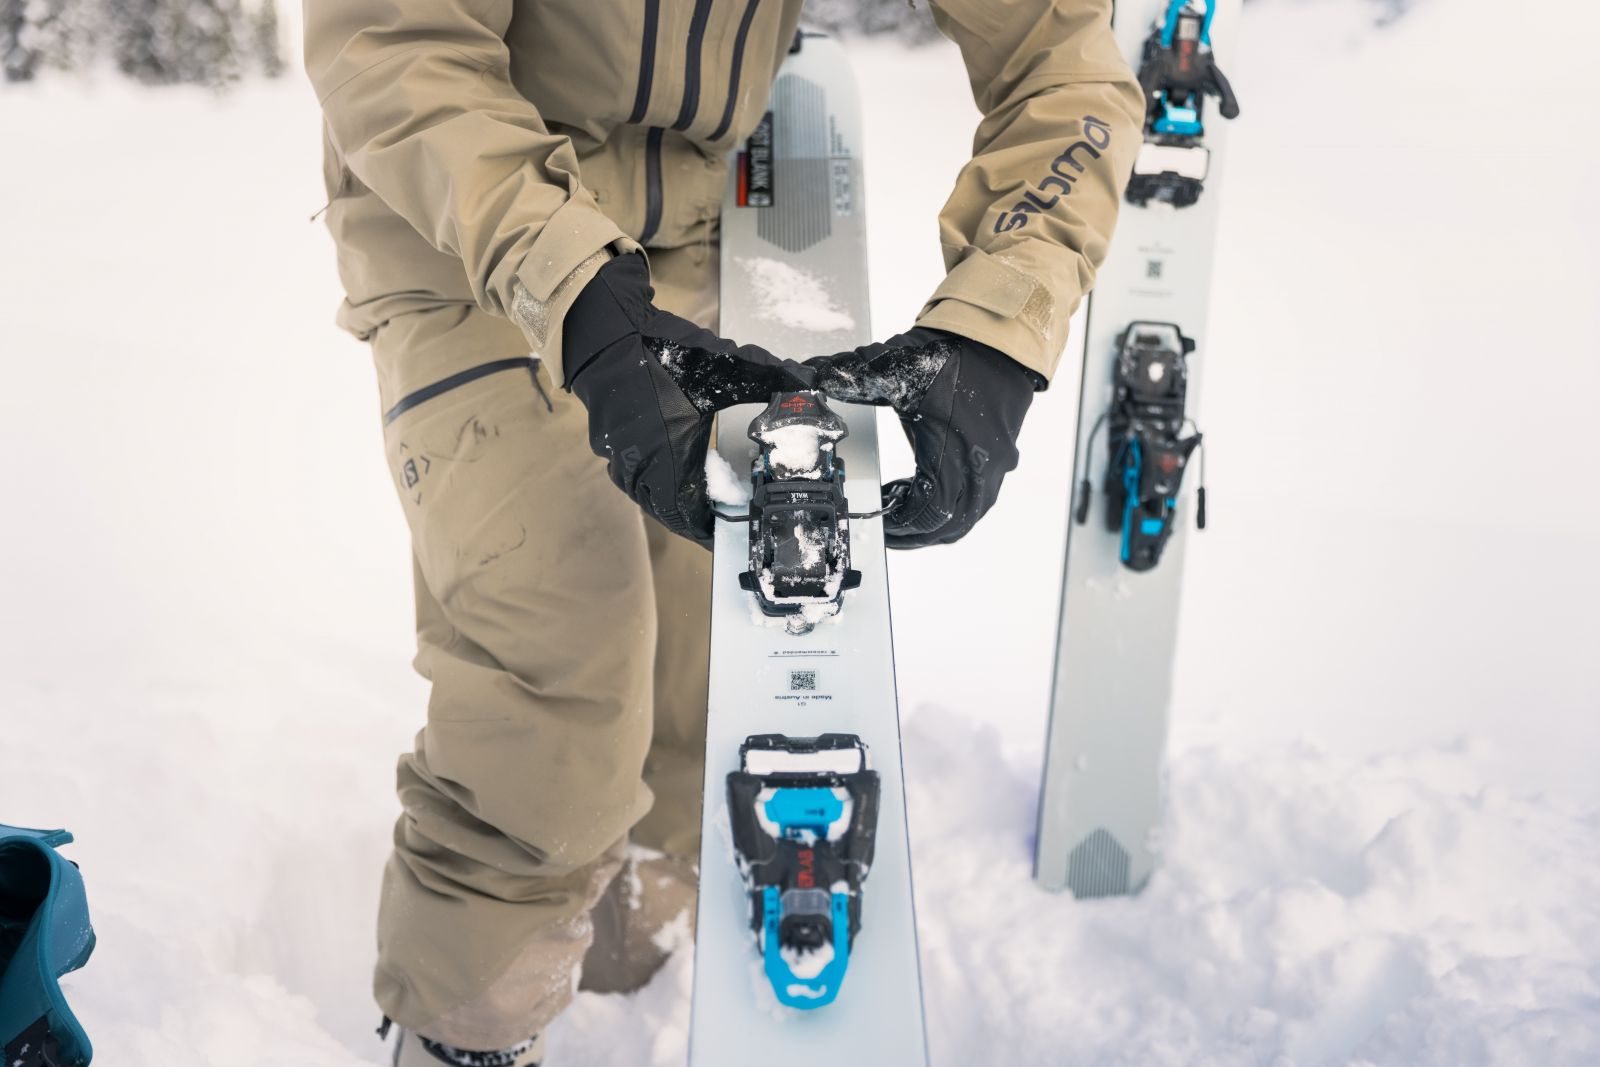 Switching from hike to tour on Salomon Shift binding